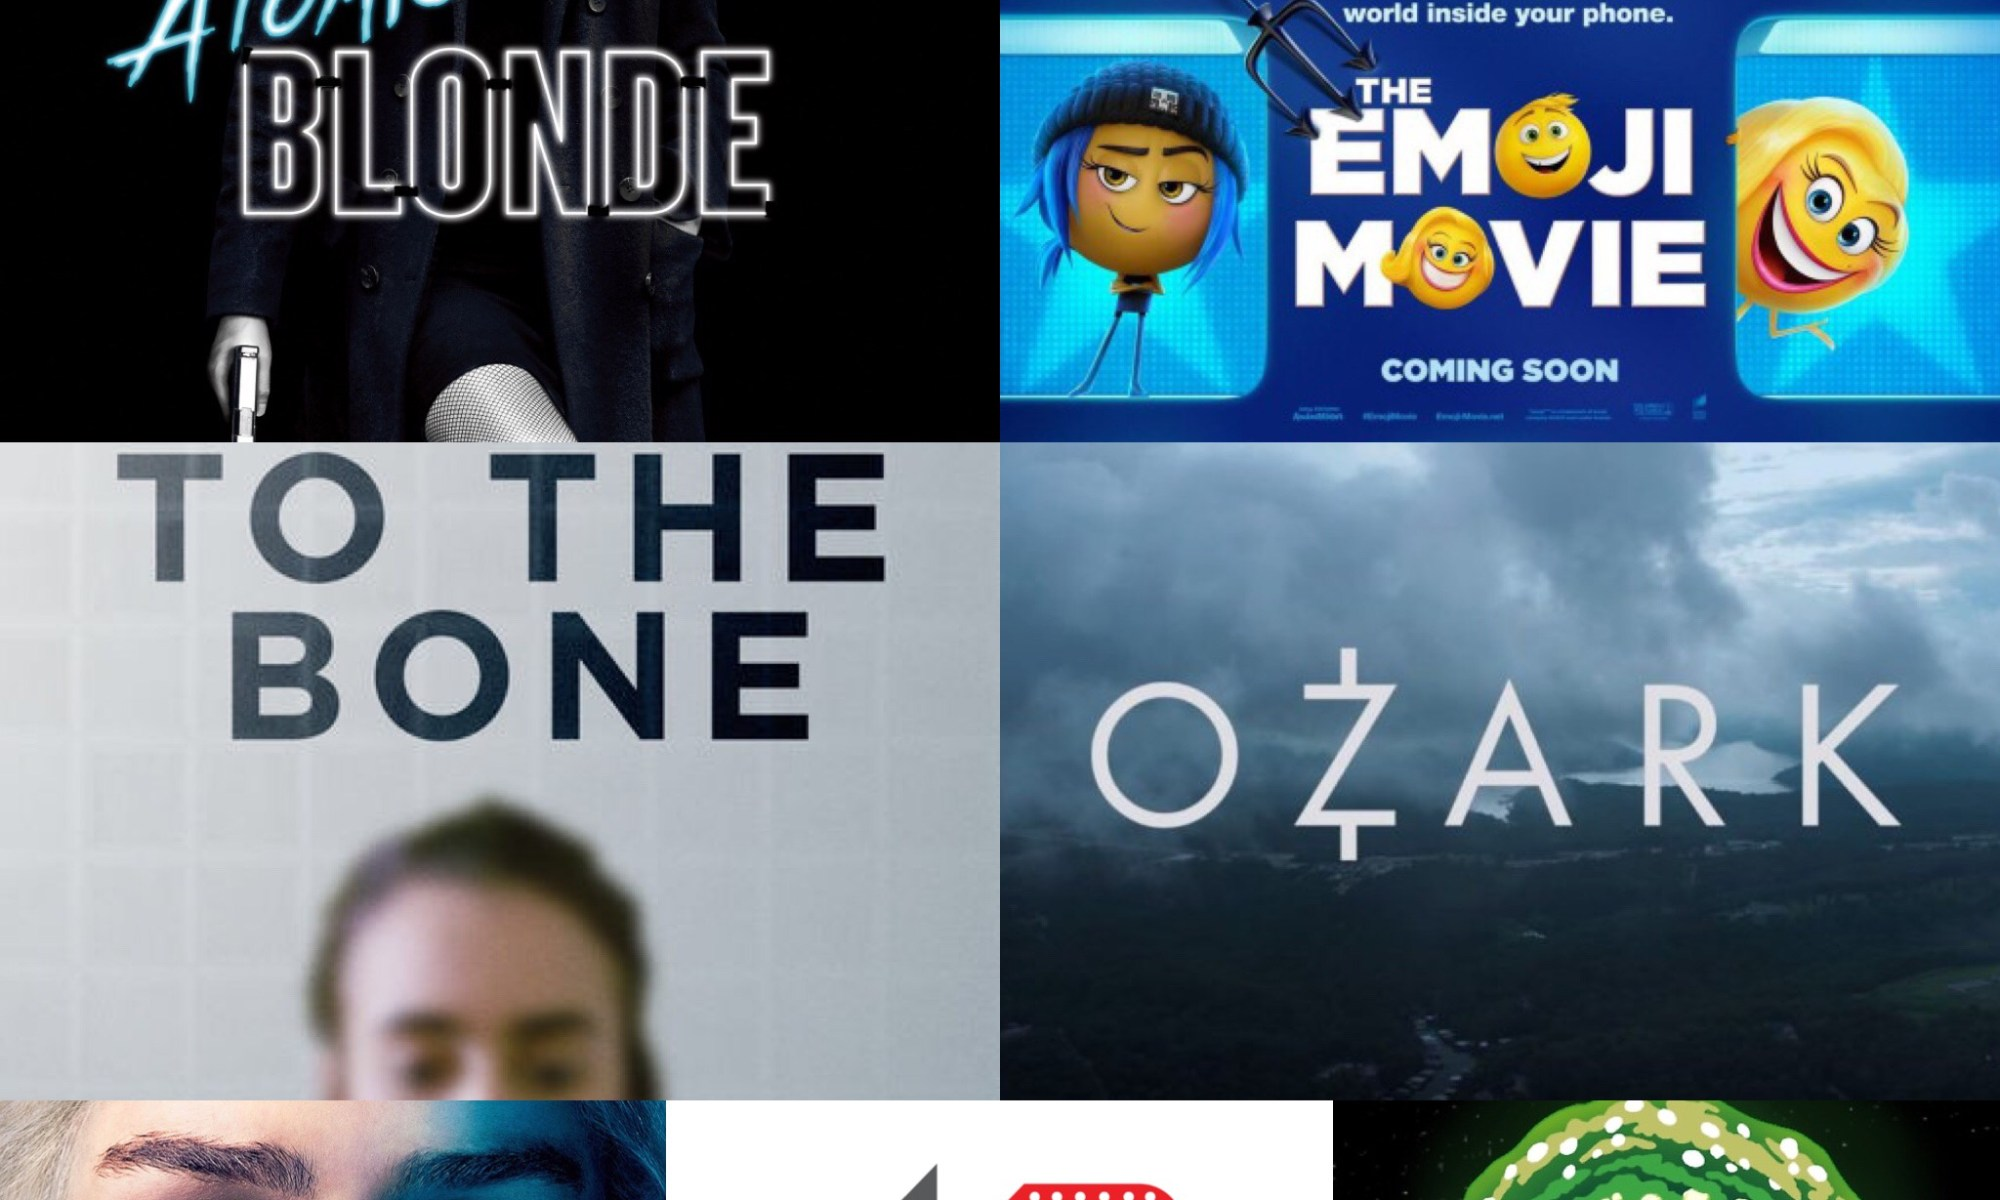 The reel review podcast tube talk movie and film review Atomic Blonde The emoji Movie Netflix to the bone